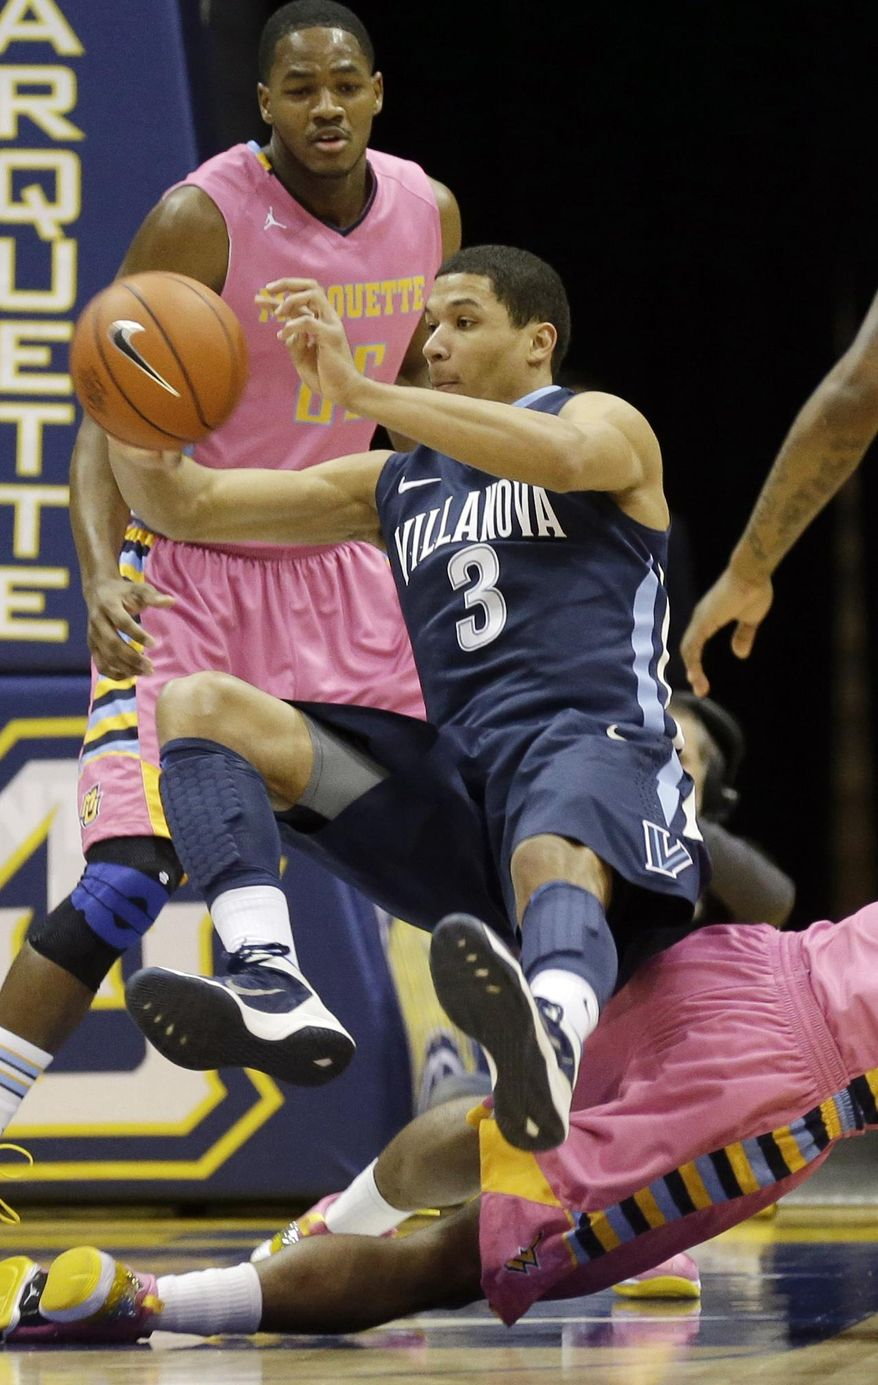 Villanova's Josh Hart(3) passes as he falls over a Marquette player during the first half of an NCAA college basketball game Saturday, Jan. 25, 2014, in Milwaukee. (AP Photo/Jeffrey Phelps)